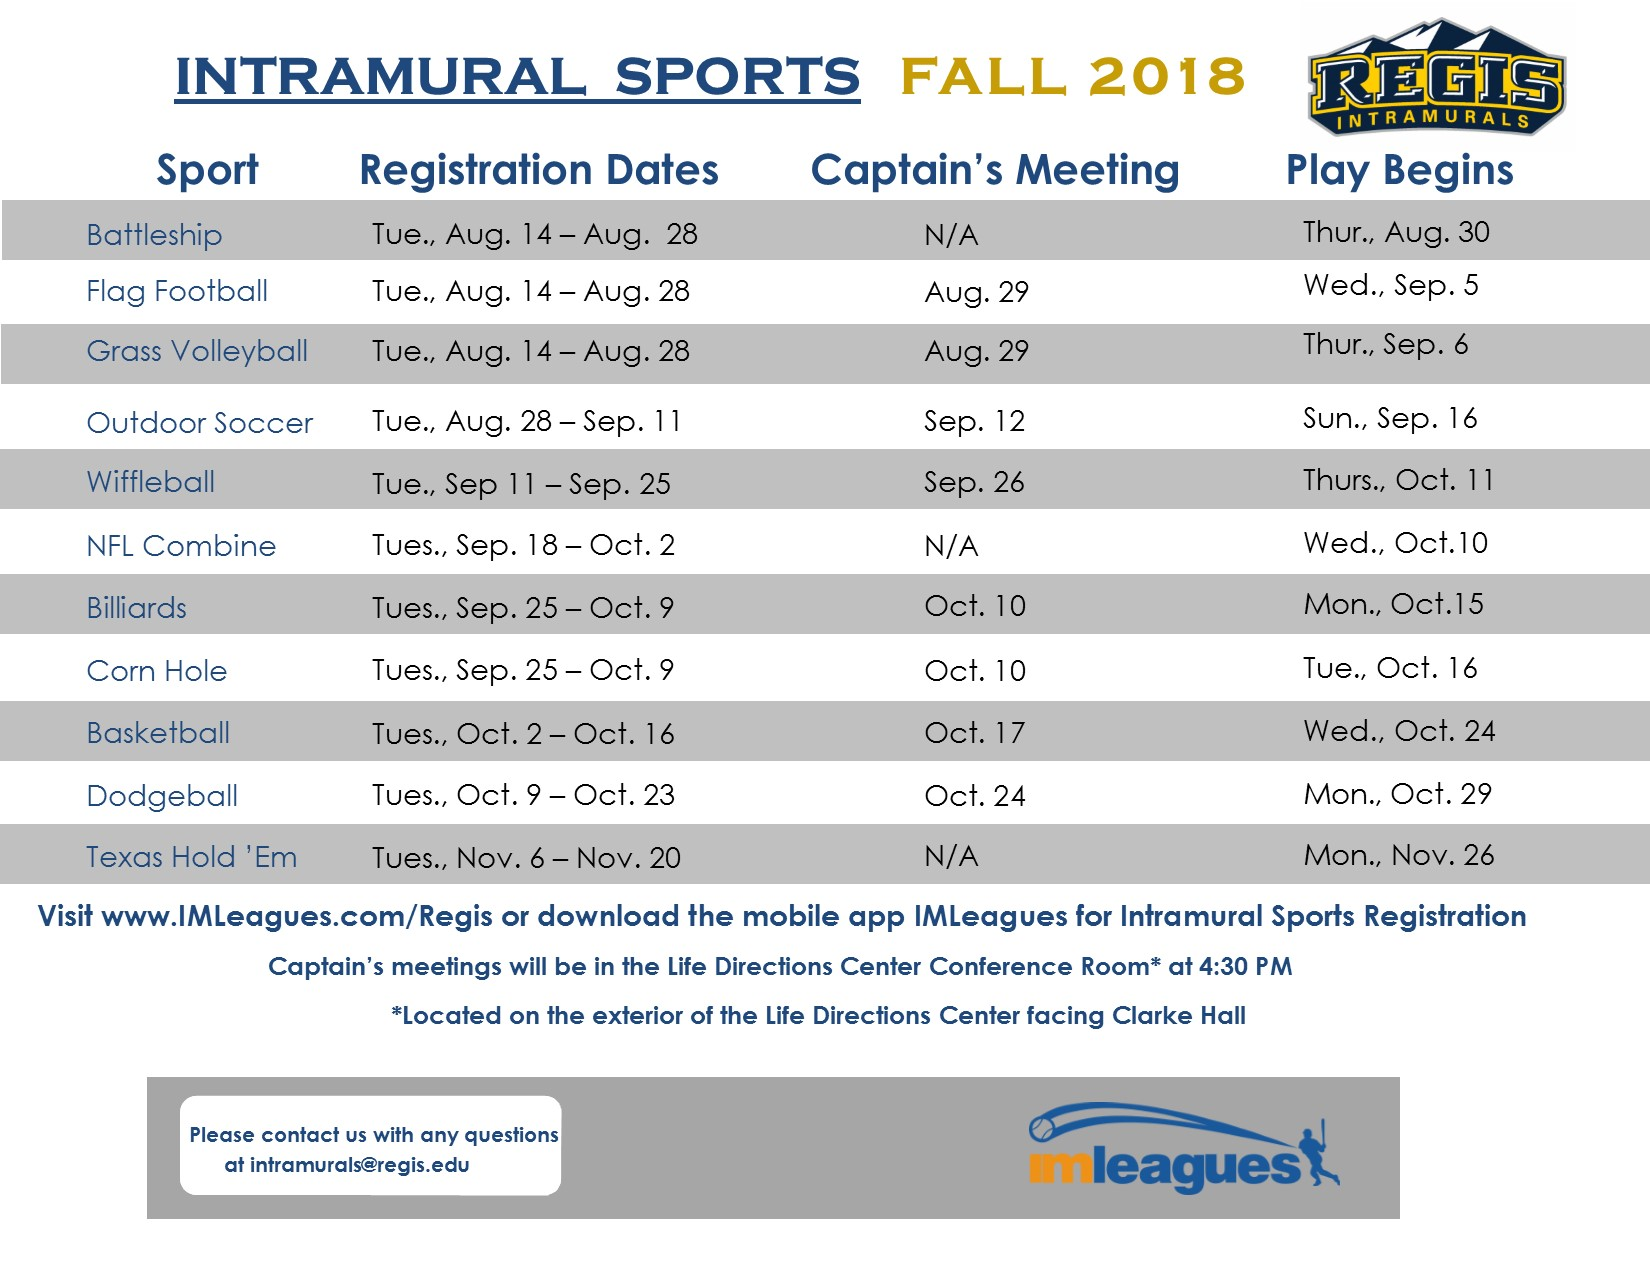 Schedule of Intramurals, provided by Fitness Center